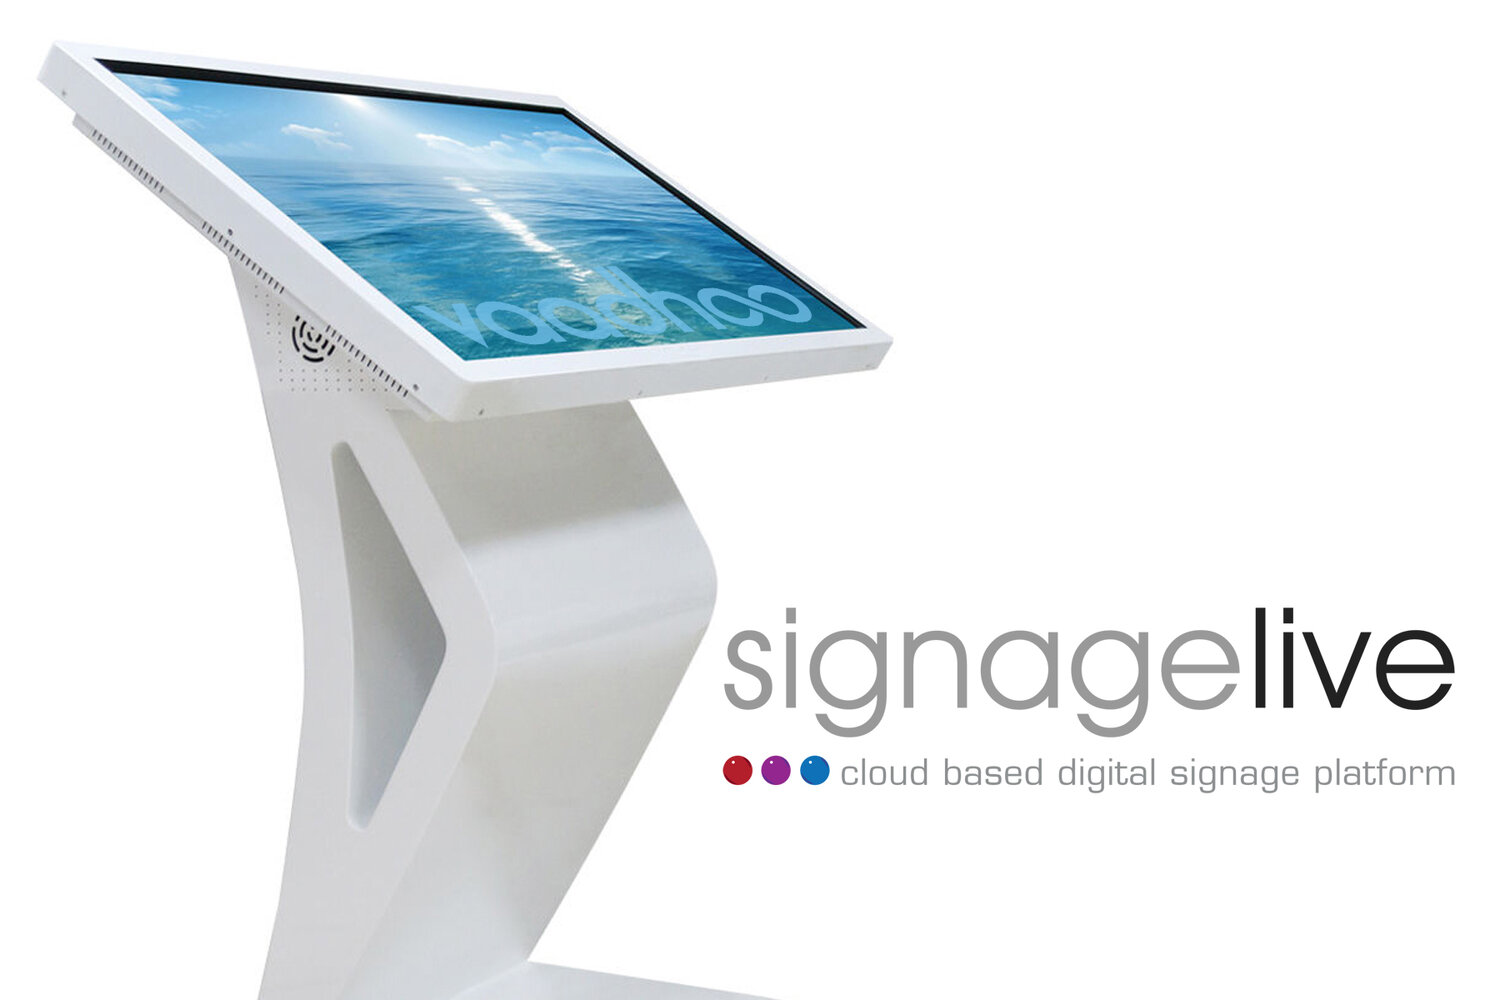 Vaadhoo screens working with Signagelive as a reseller based in Liverpool